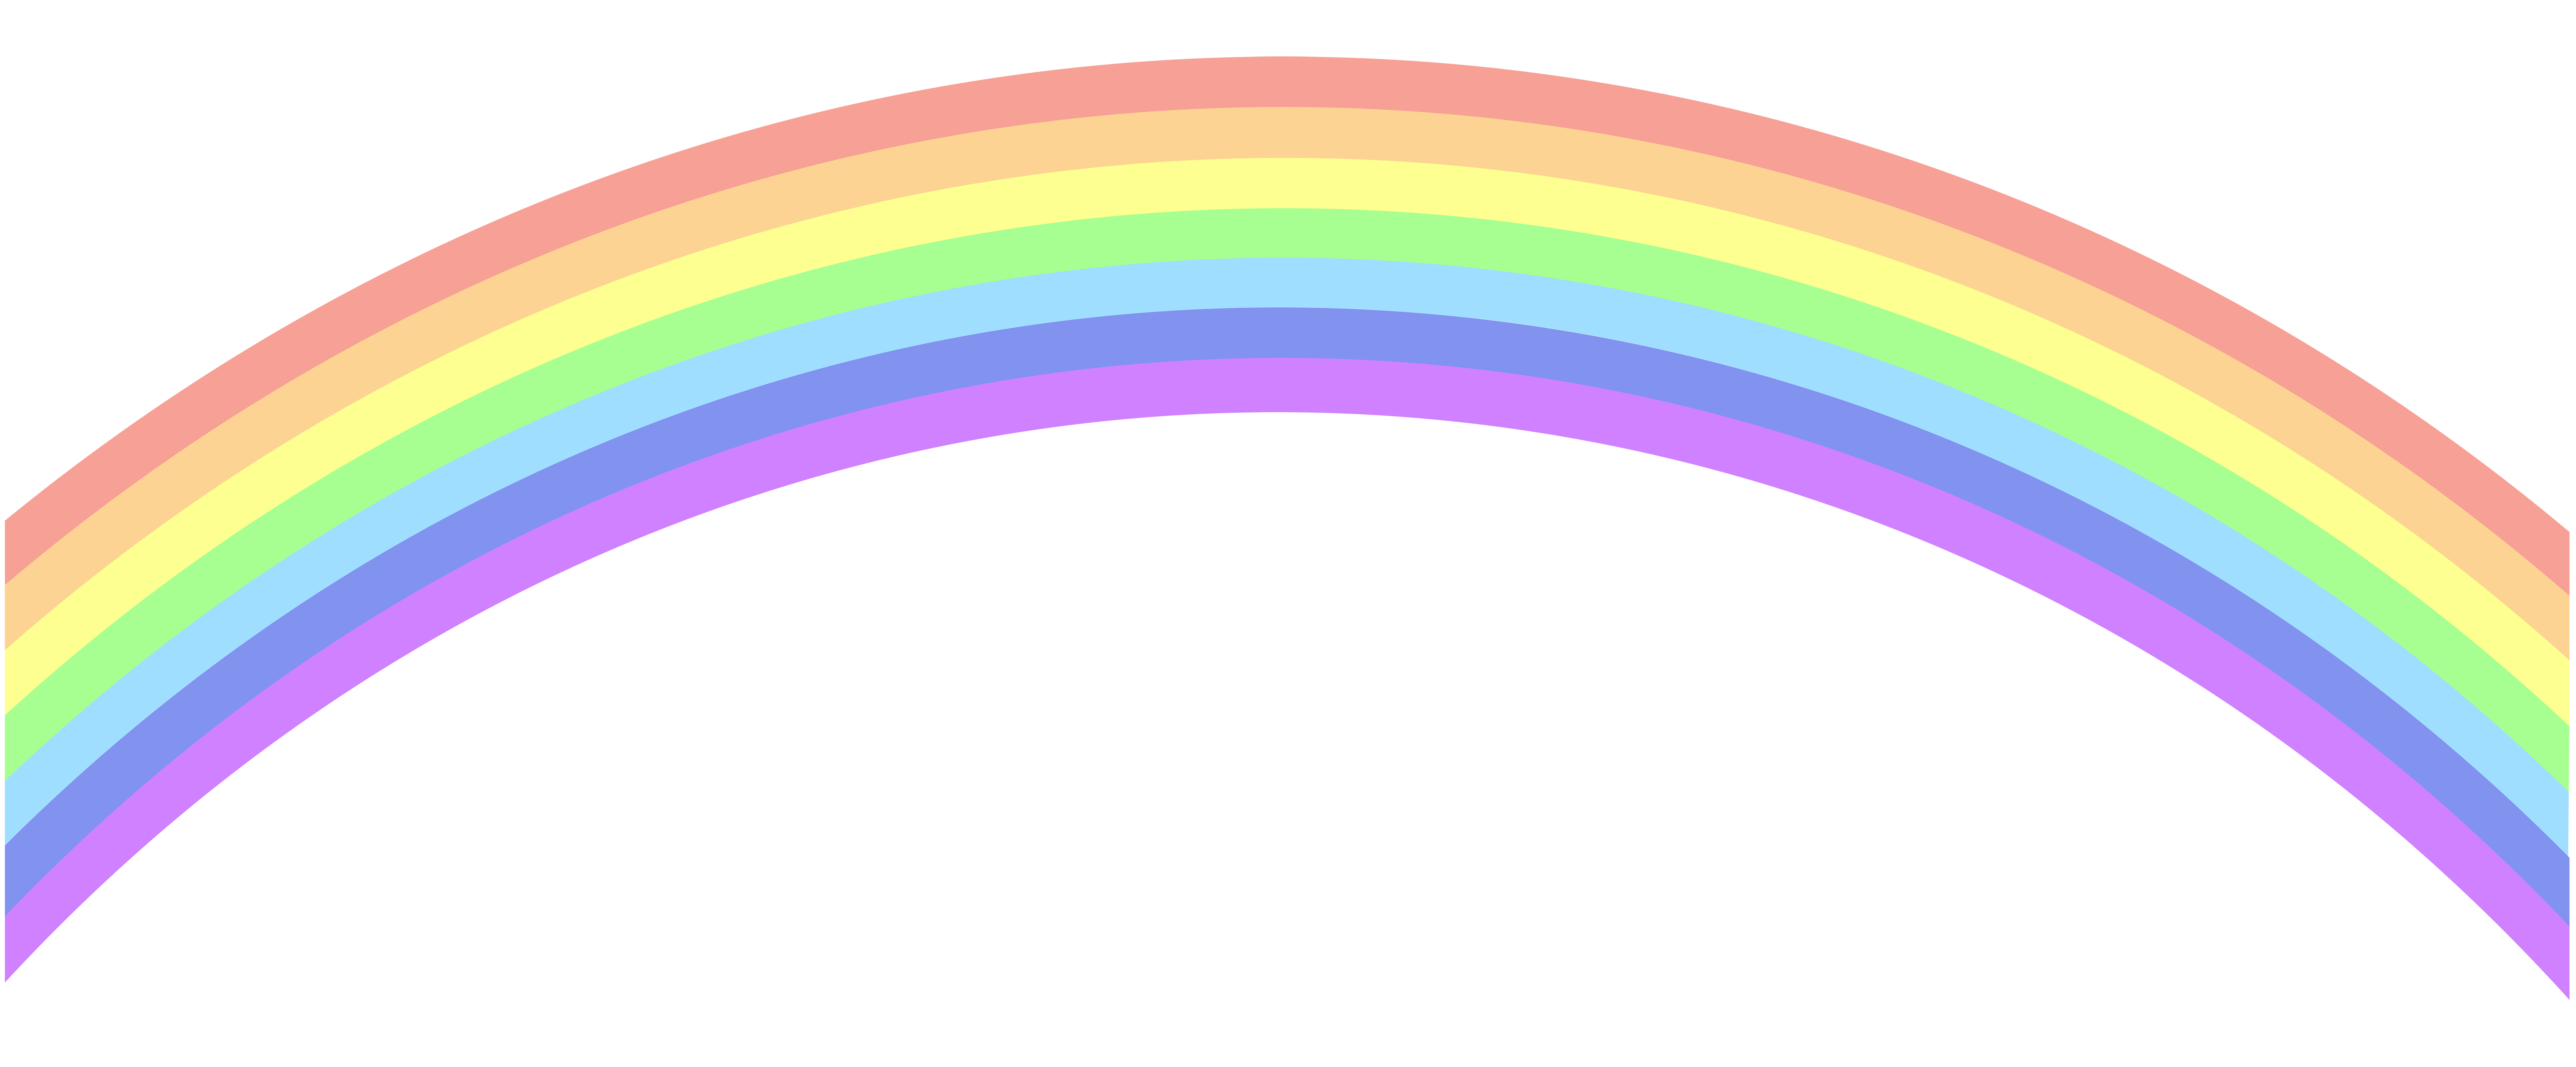 Rainbow Clip Art Png Image Gallery Yopriceville High Quality Images And Transparent Png Free Clipart Clip Art Rainbow Png Clip Art Pictures